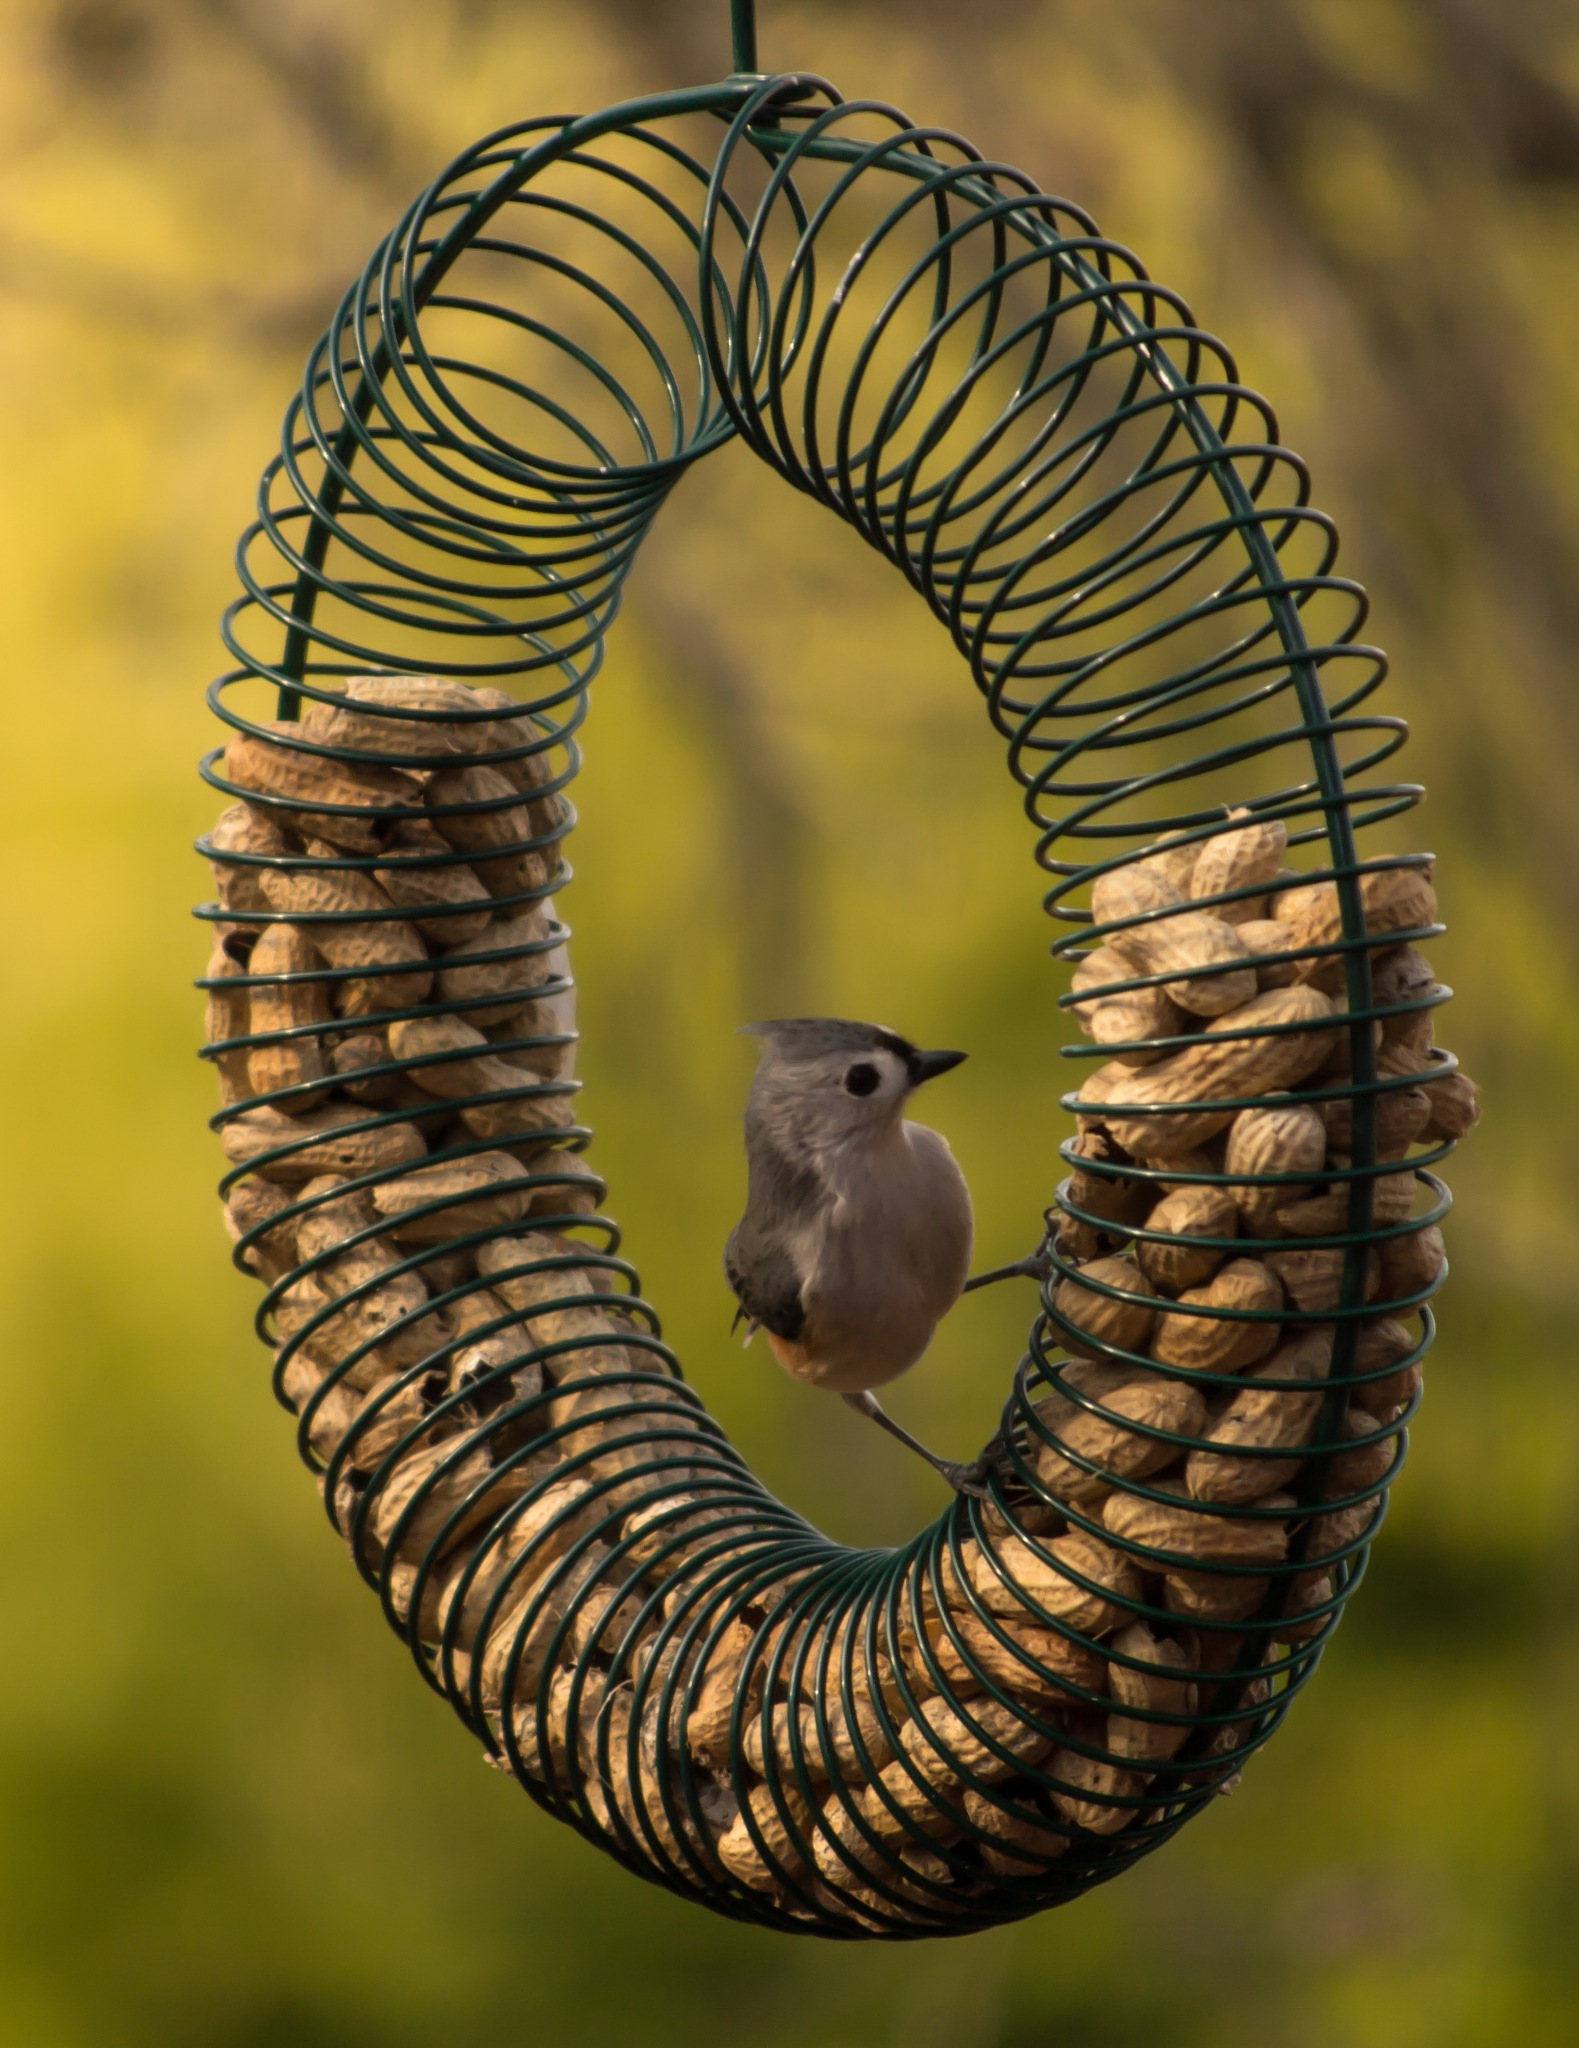 Tufted Titmouse by Jamie Critzer